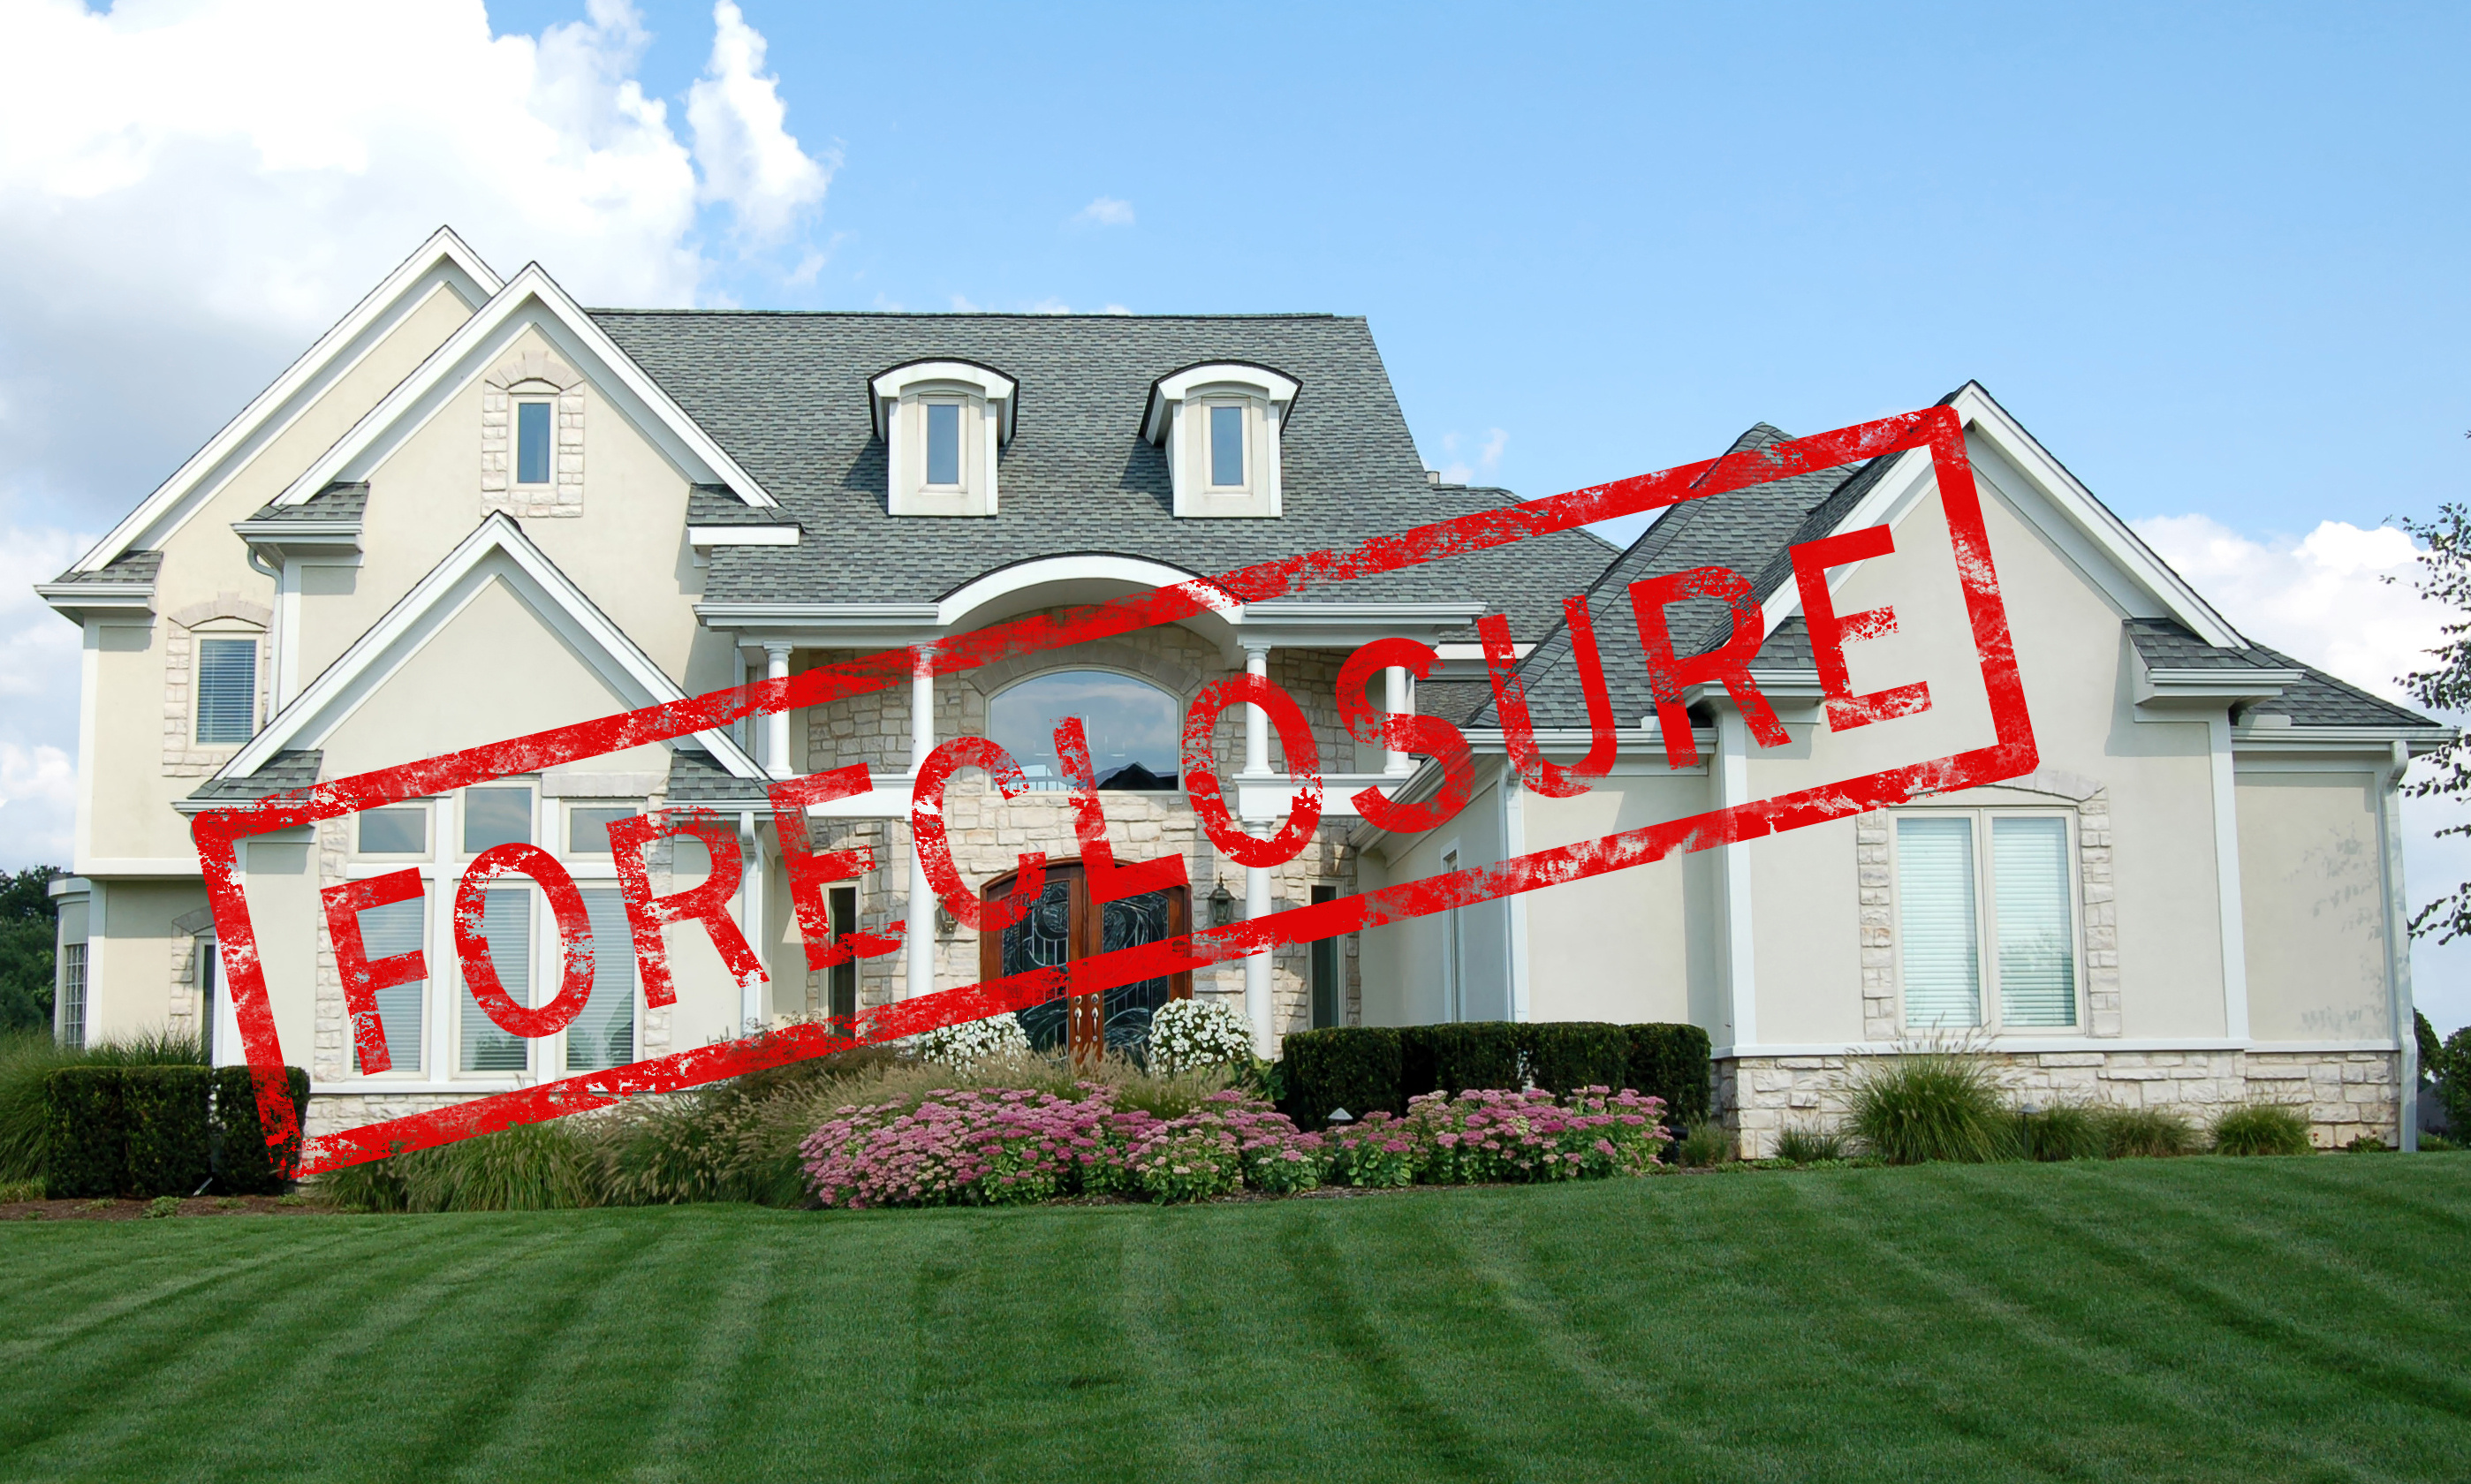 Call Anderson Appraisal, LLC to discuss valuations of Randall foreclosures